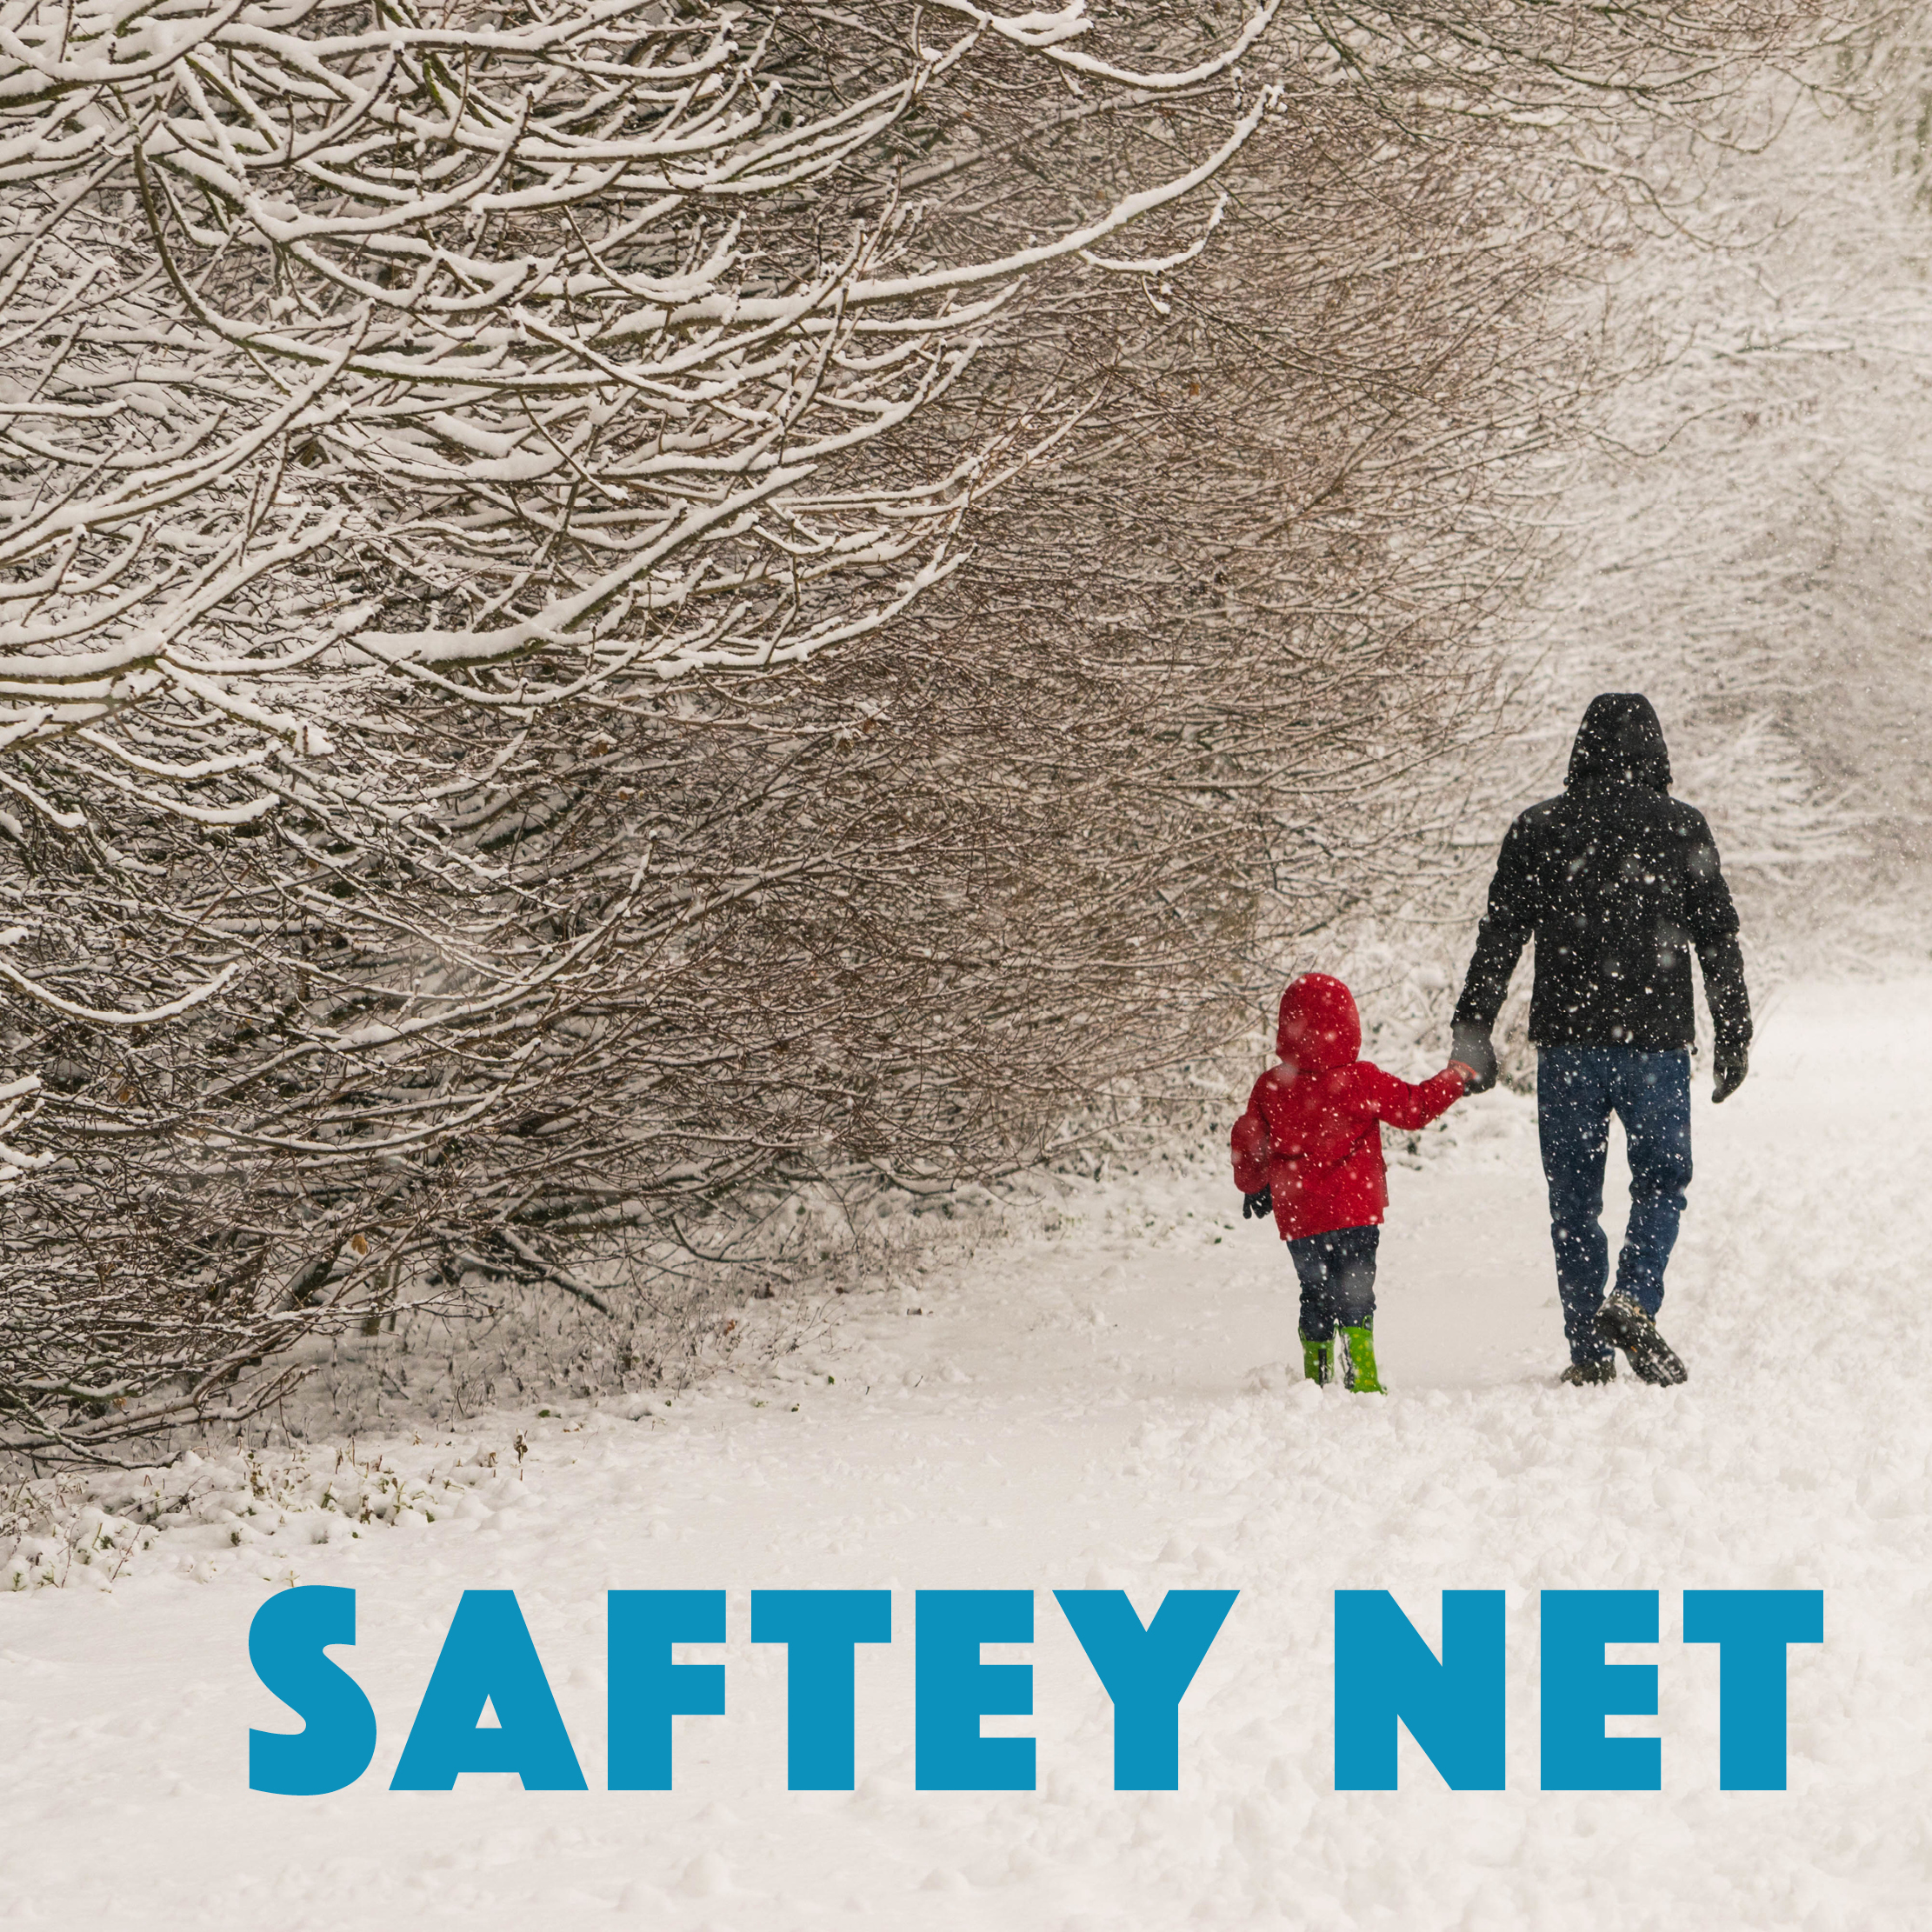 SAFETY NET HEADER